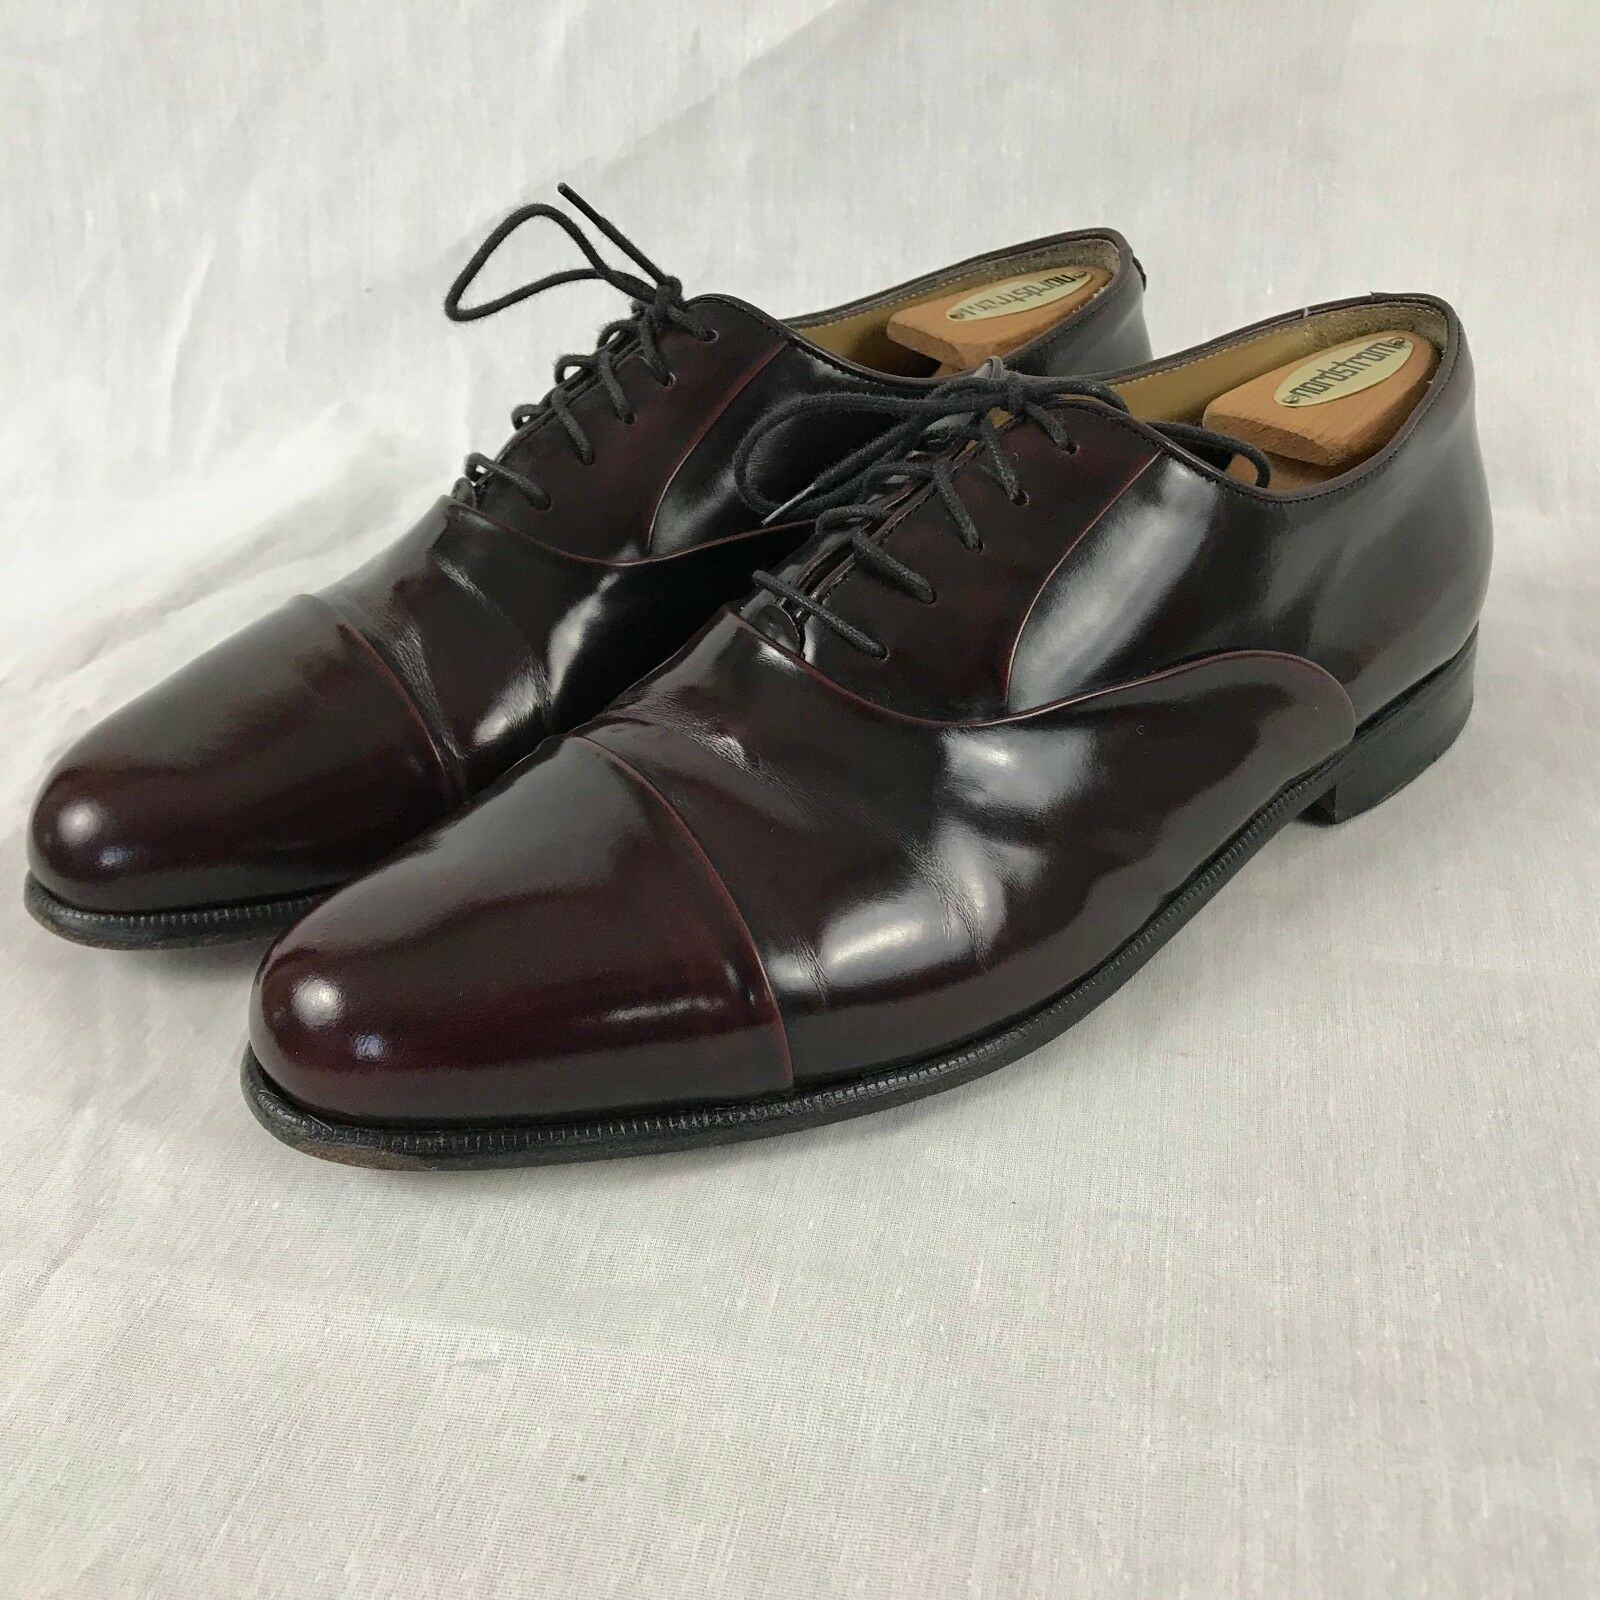 Nordstrom Burgundy Leather Cap Toe Oxford Dress shoes Men's Size 10.5 M (D)